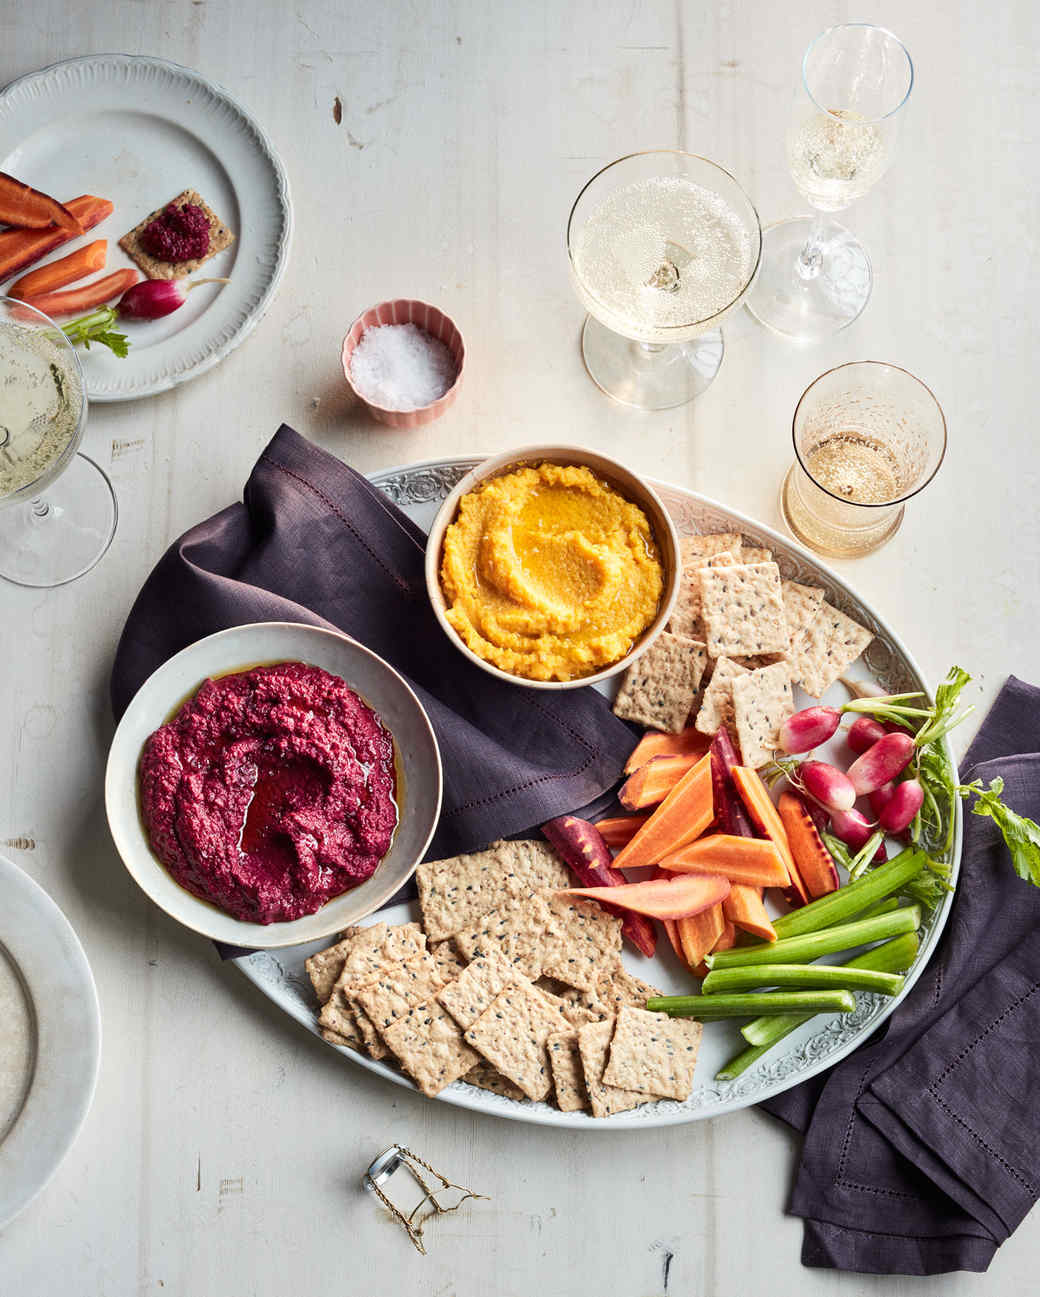 fall potluck relish tray and glasses of champagne on table